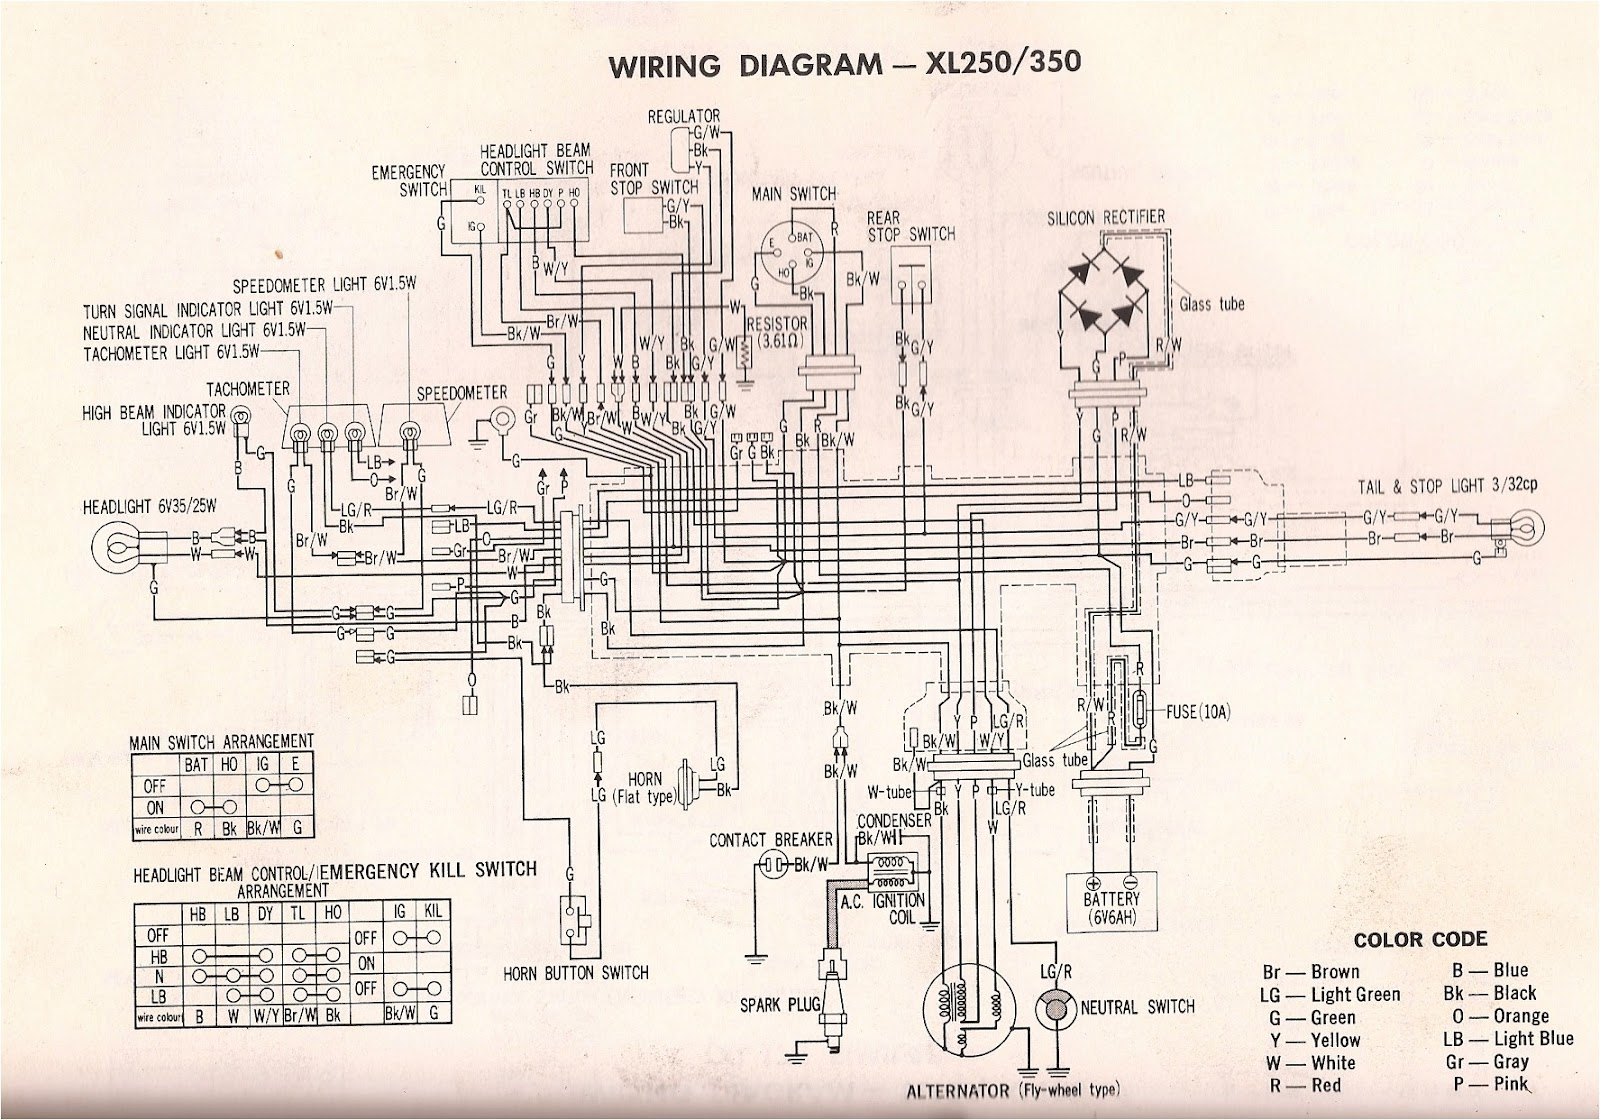 XL350+Wiring+diagram+S r4l xl350 wiring diagram (and xl250) 1978 honda hobbit wiring diagram at nearapp.co